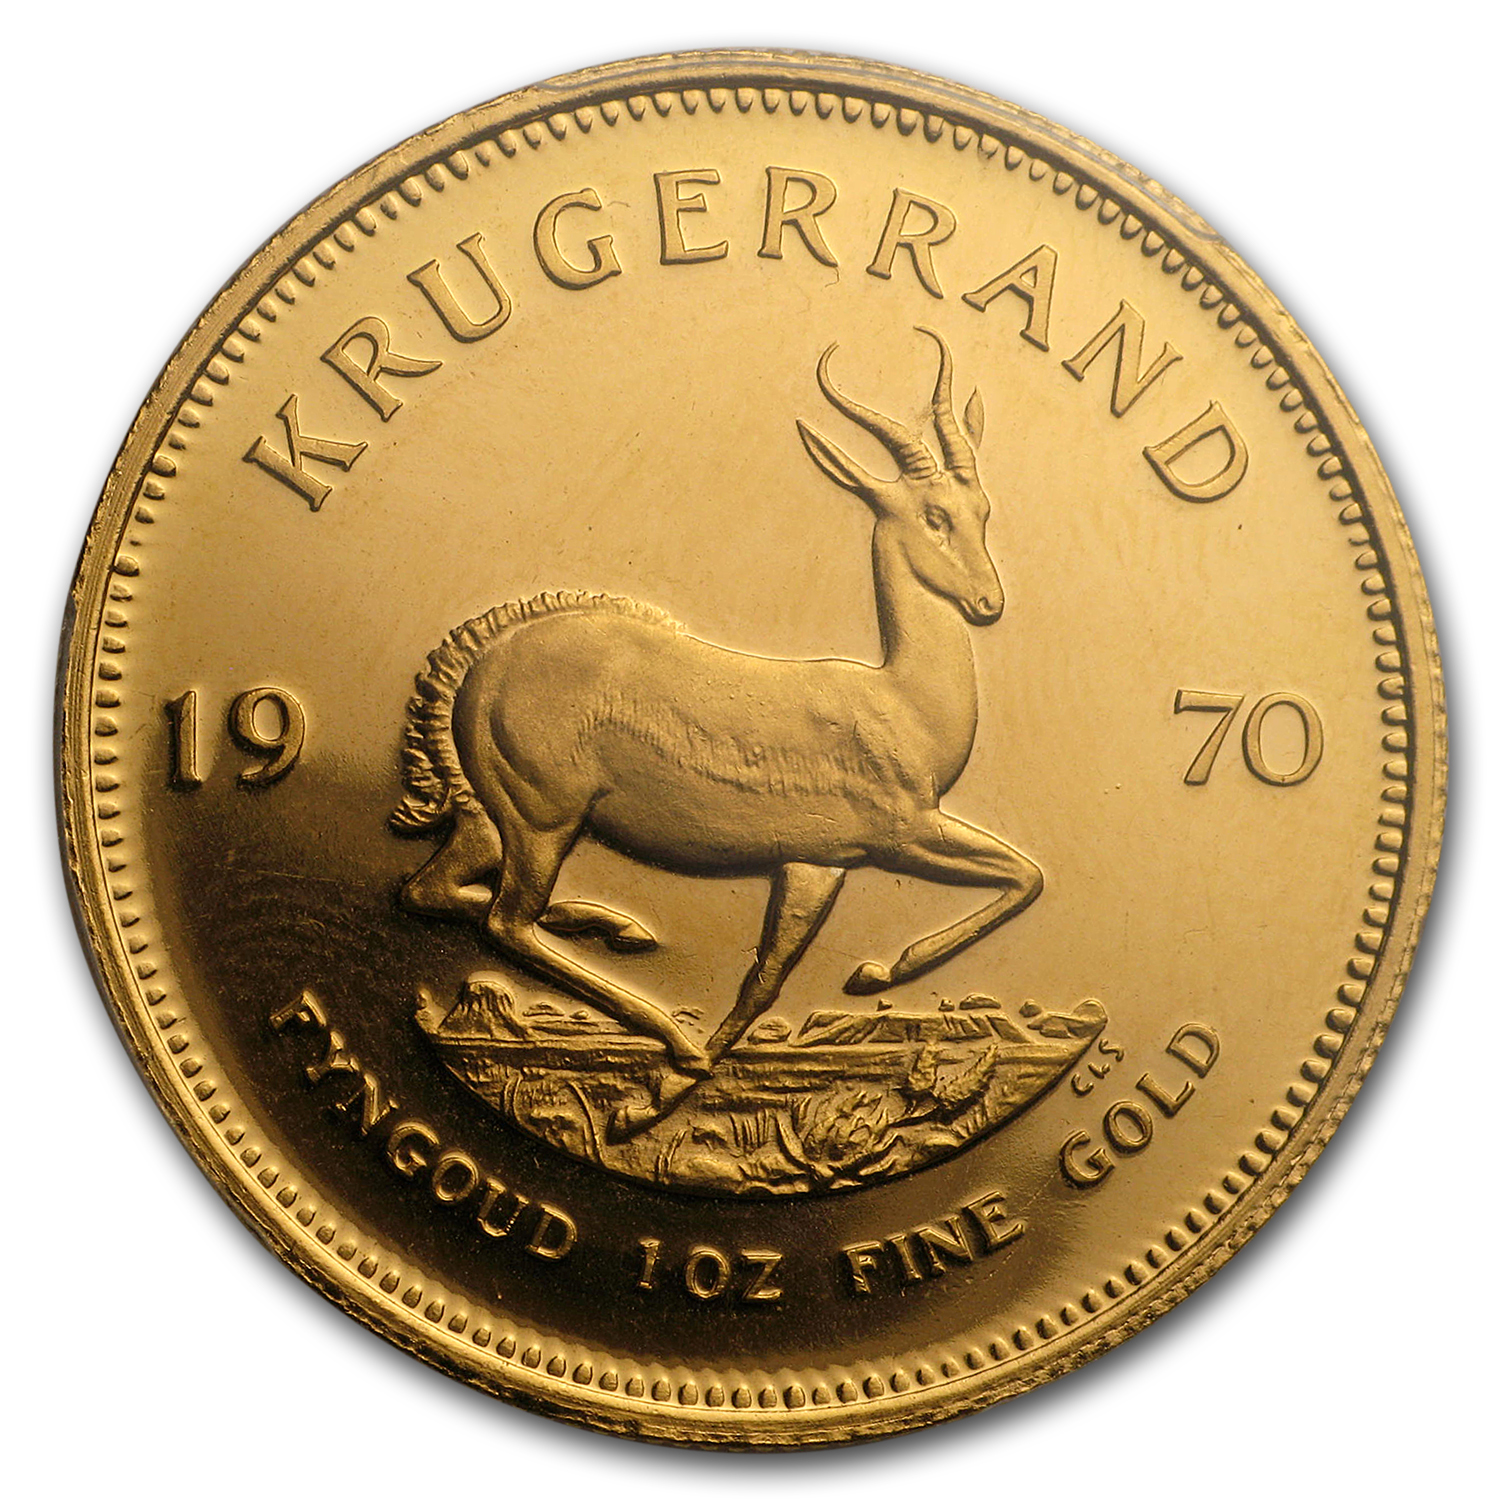 1970 South Africa 1 oz Proof Gold Krugerrand PR-66 PCGS